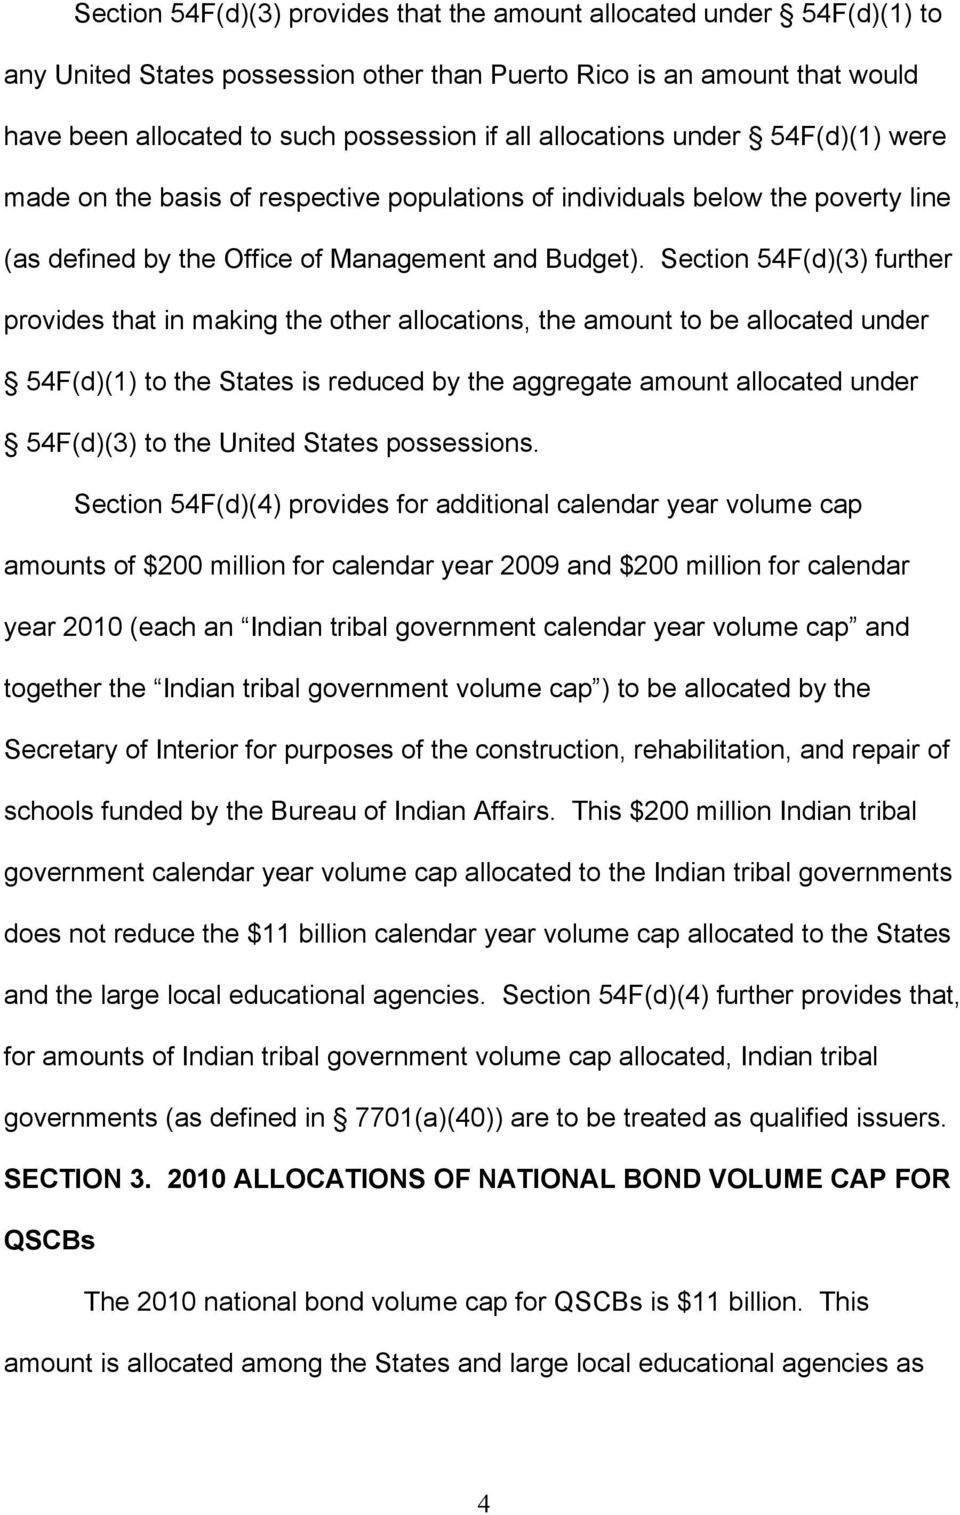 Section 54F(d)(3) further provides that in making the other allocations, the amount to be allocated under 54F(d)(1) to the States is reduced by the aggregate amount allocated under 54F(d)(3) to the